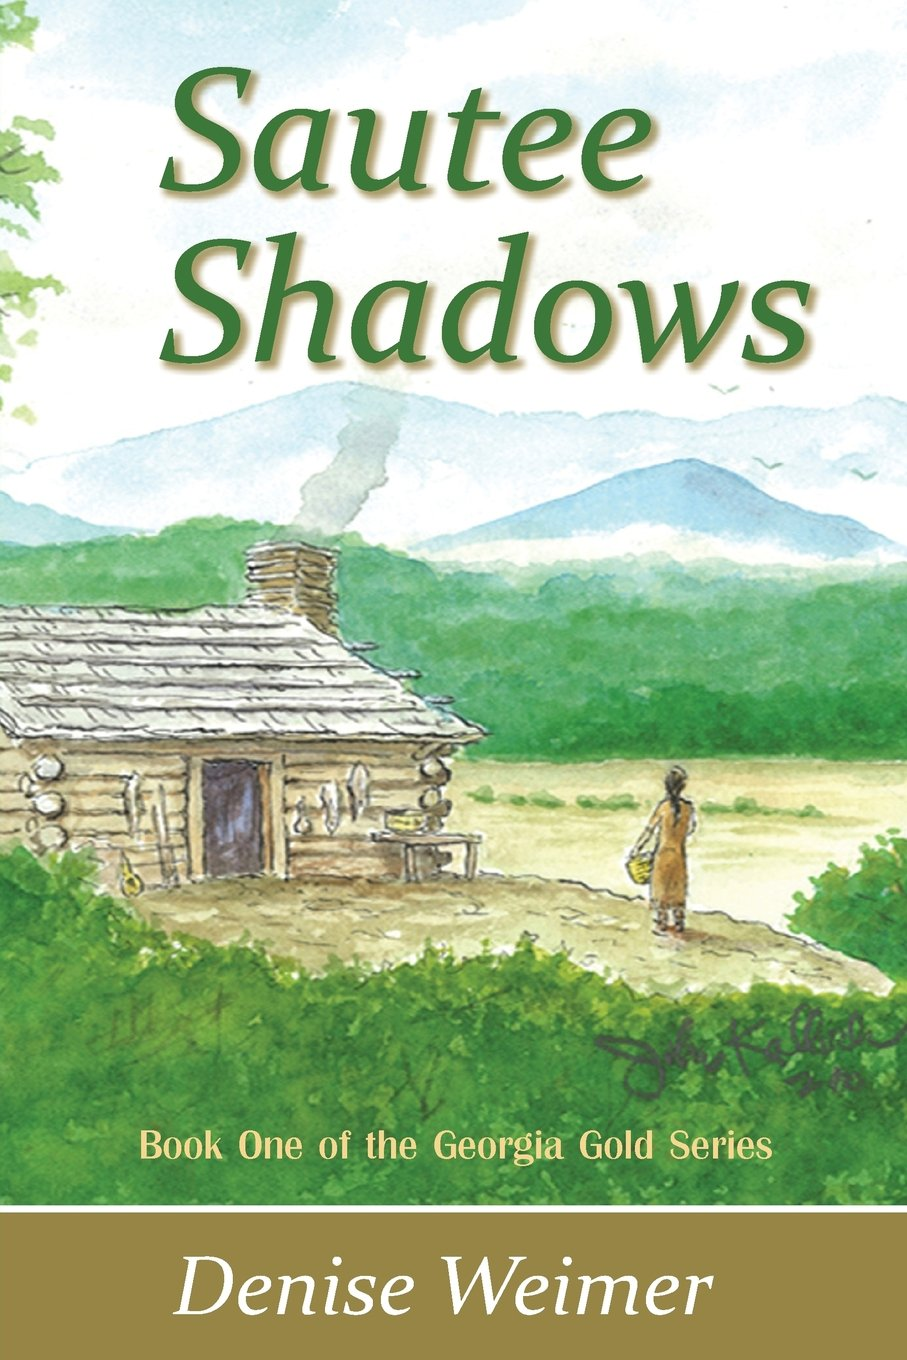 Download Sautee Shadows: Book One of the Georgia Gold Series PDF